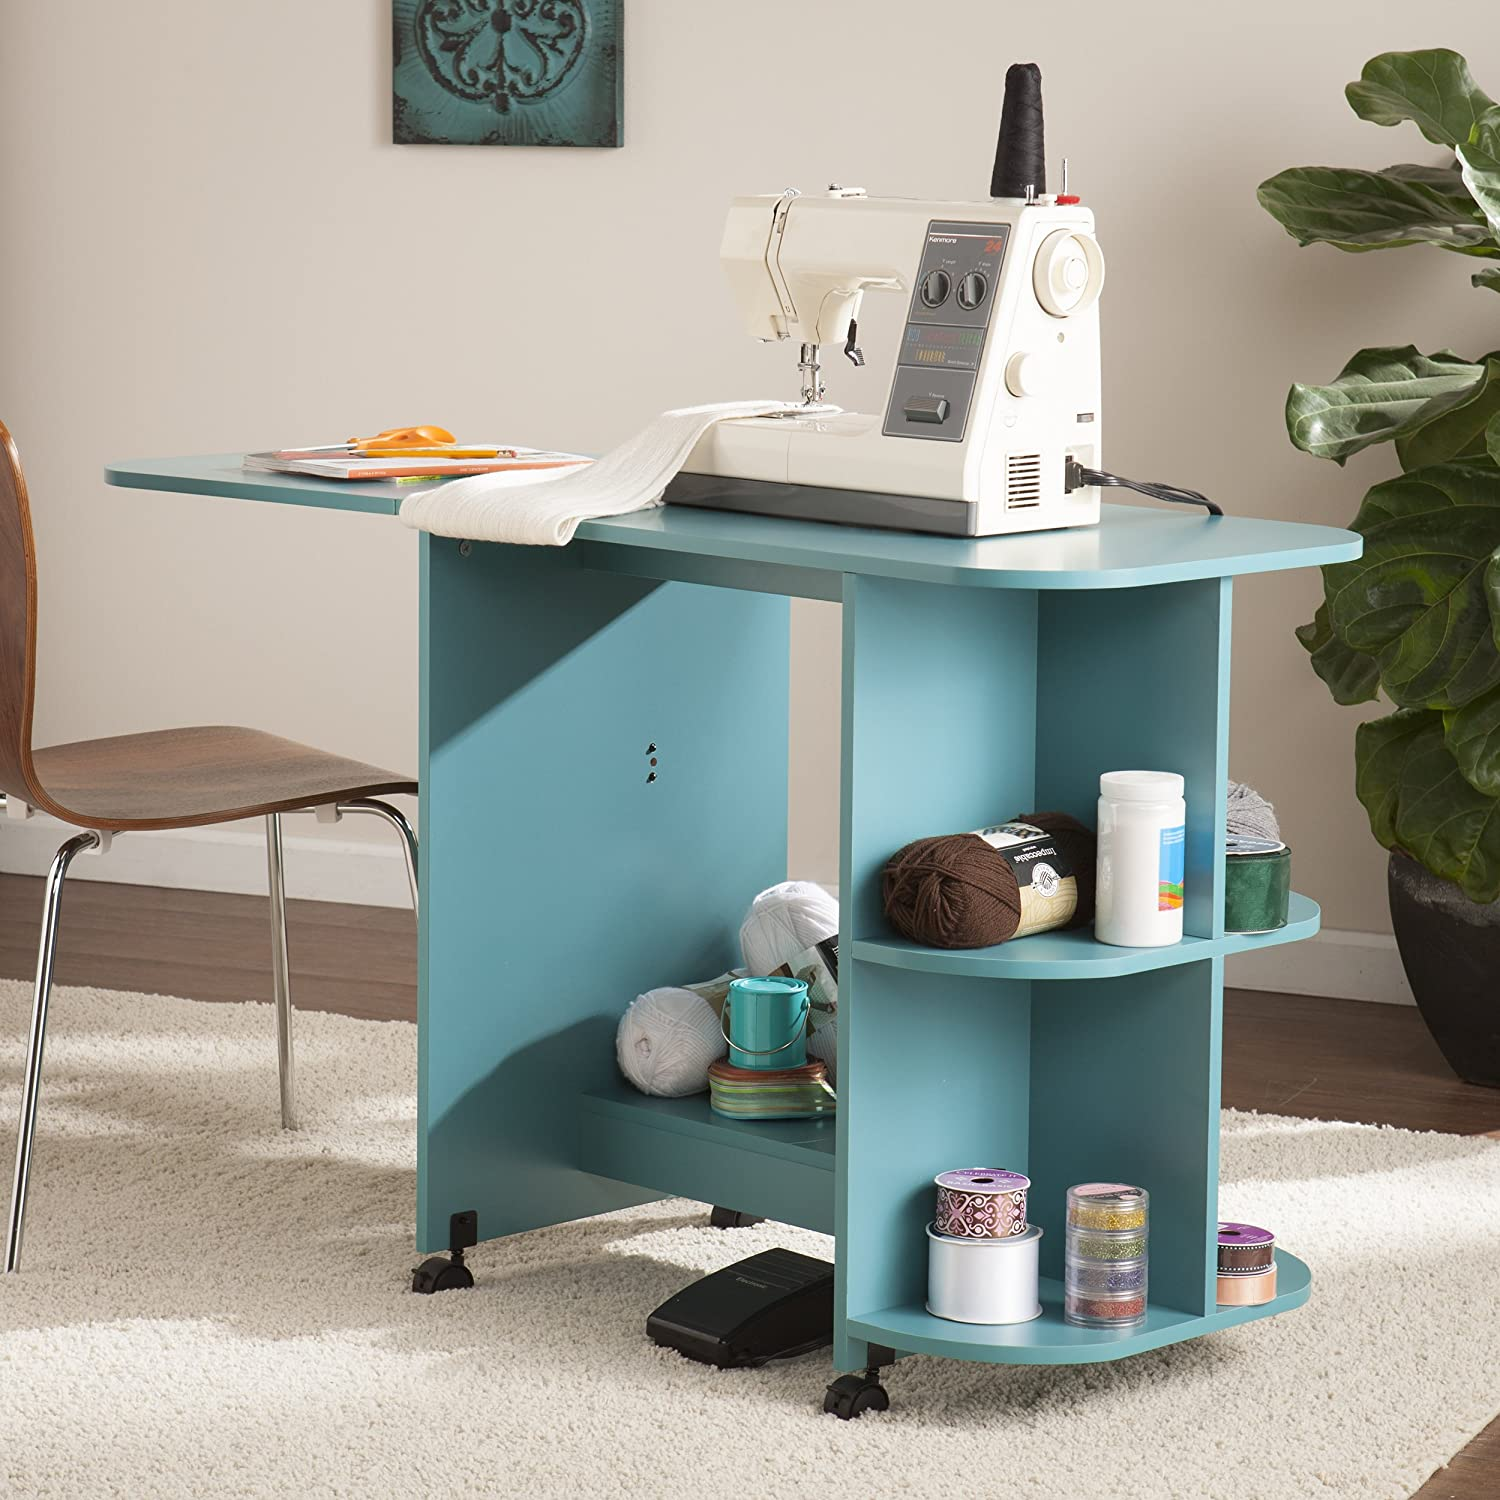 Amazon.com: Sewing Table - White: Kitchen & Dining